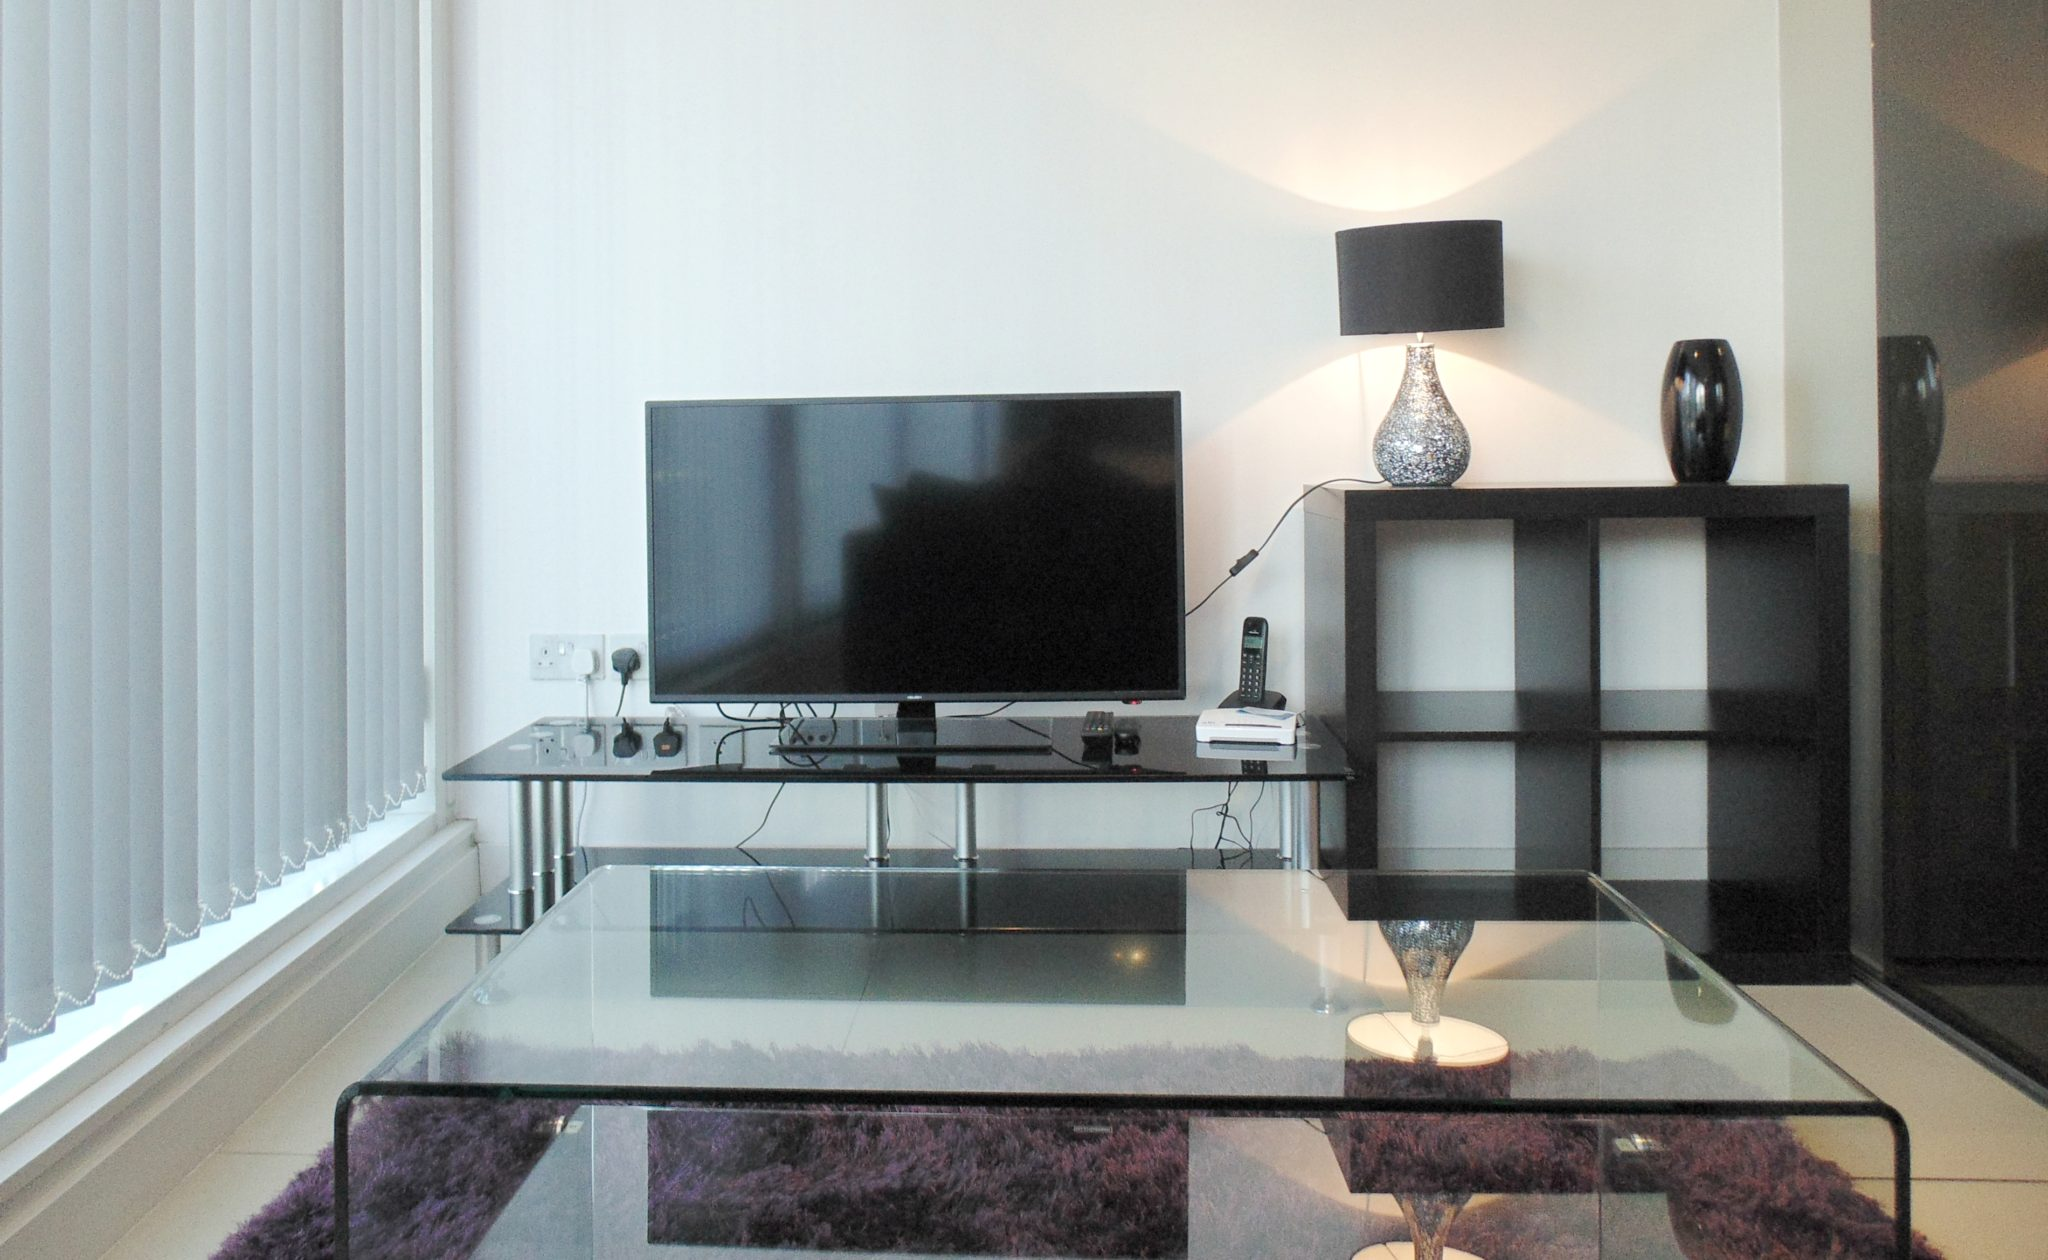 Islington-Serviced-Apartments,-London-available-now!-Book-Cheap-Old-street-Executive-Apartments-with-Free-Wifi-and-Air-Conditioning